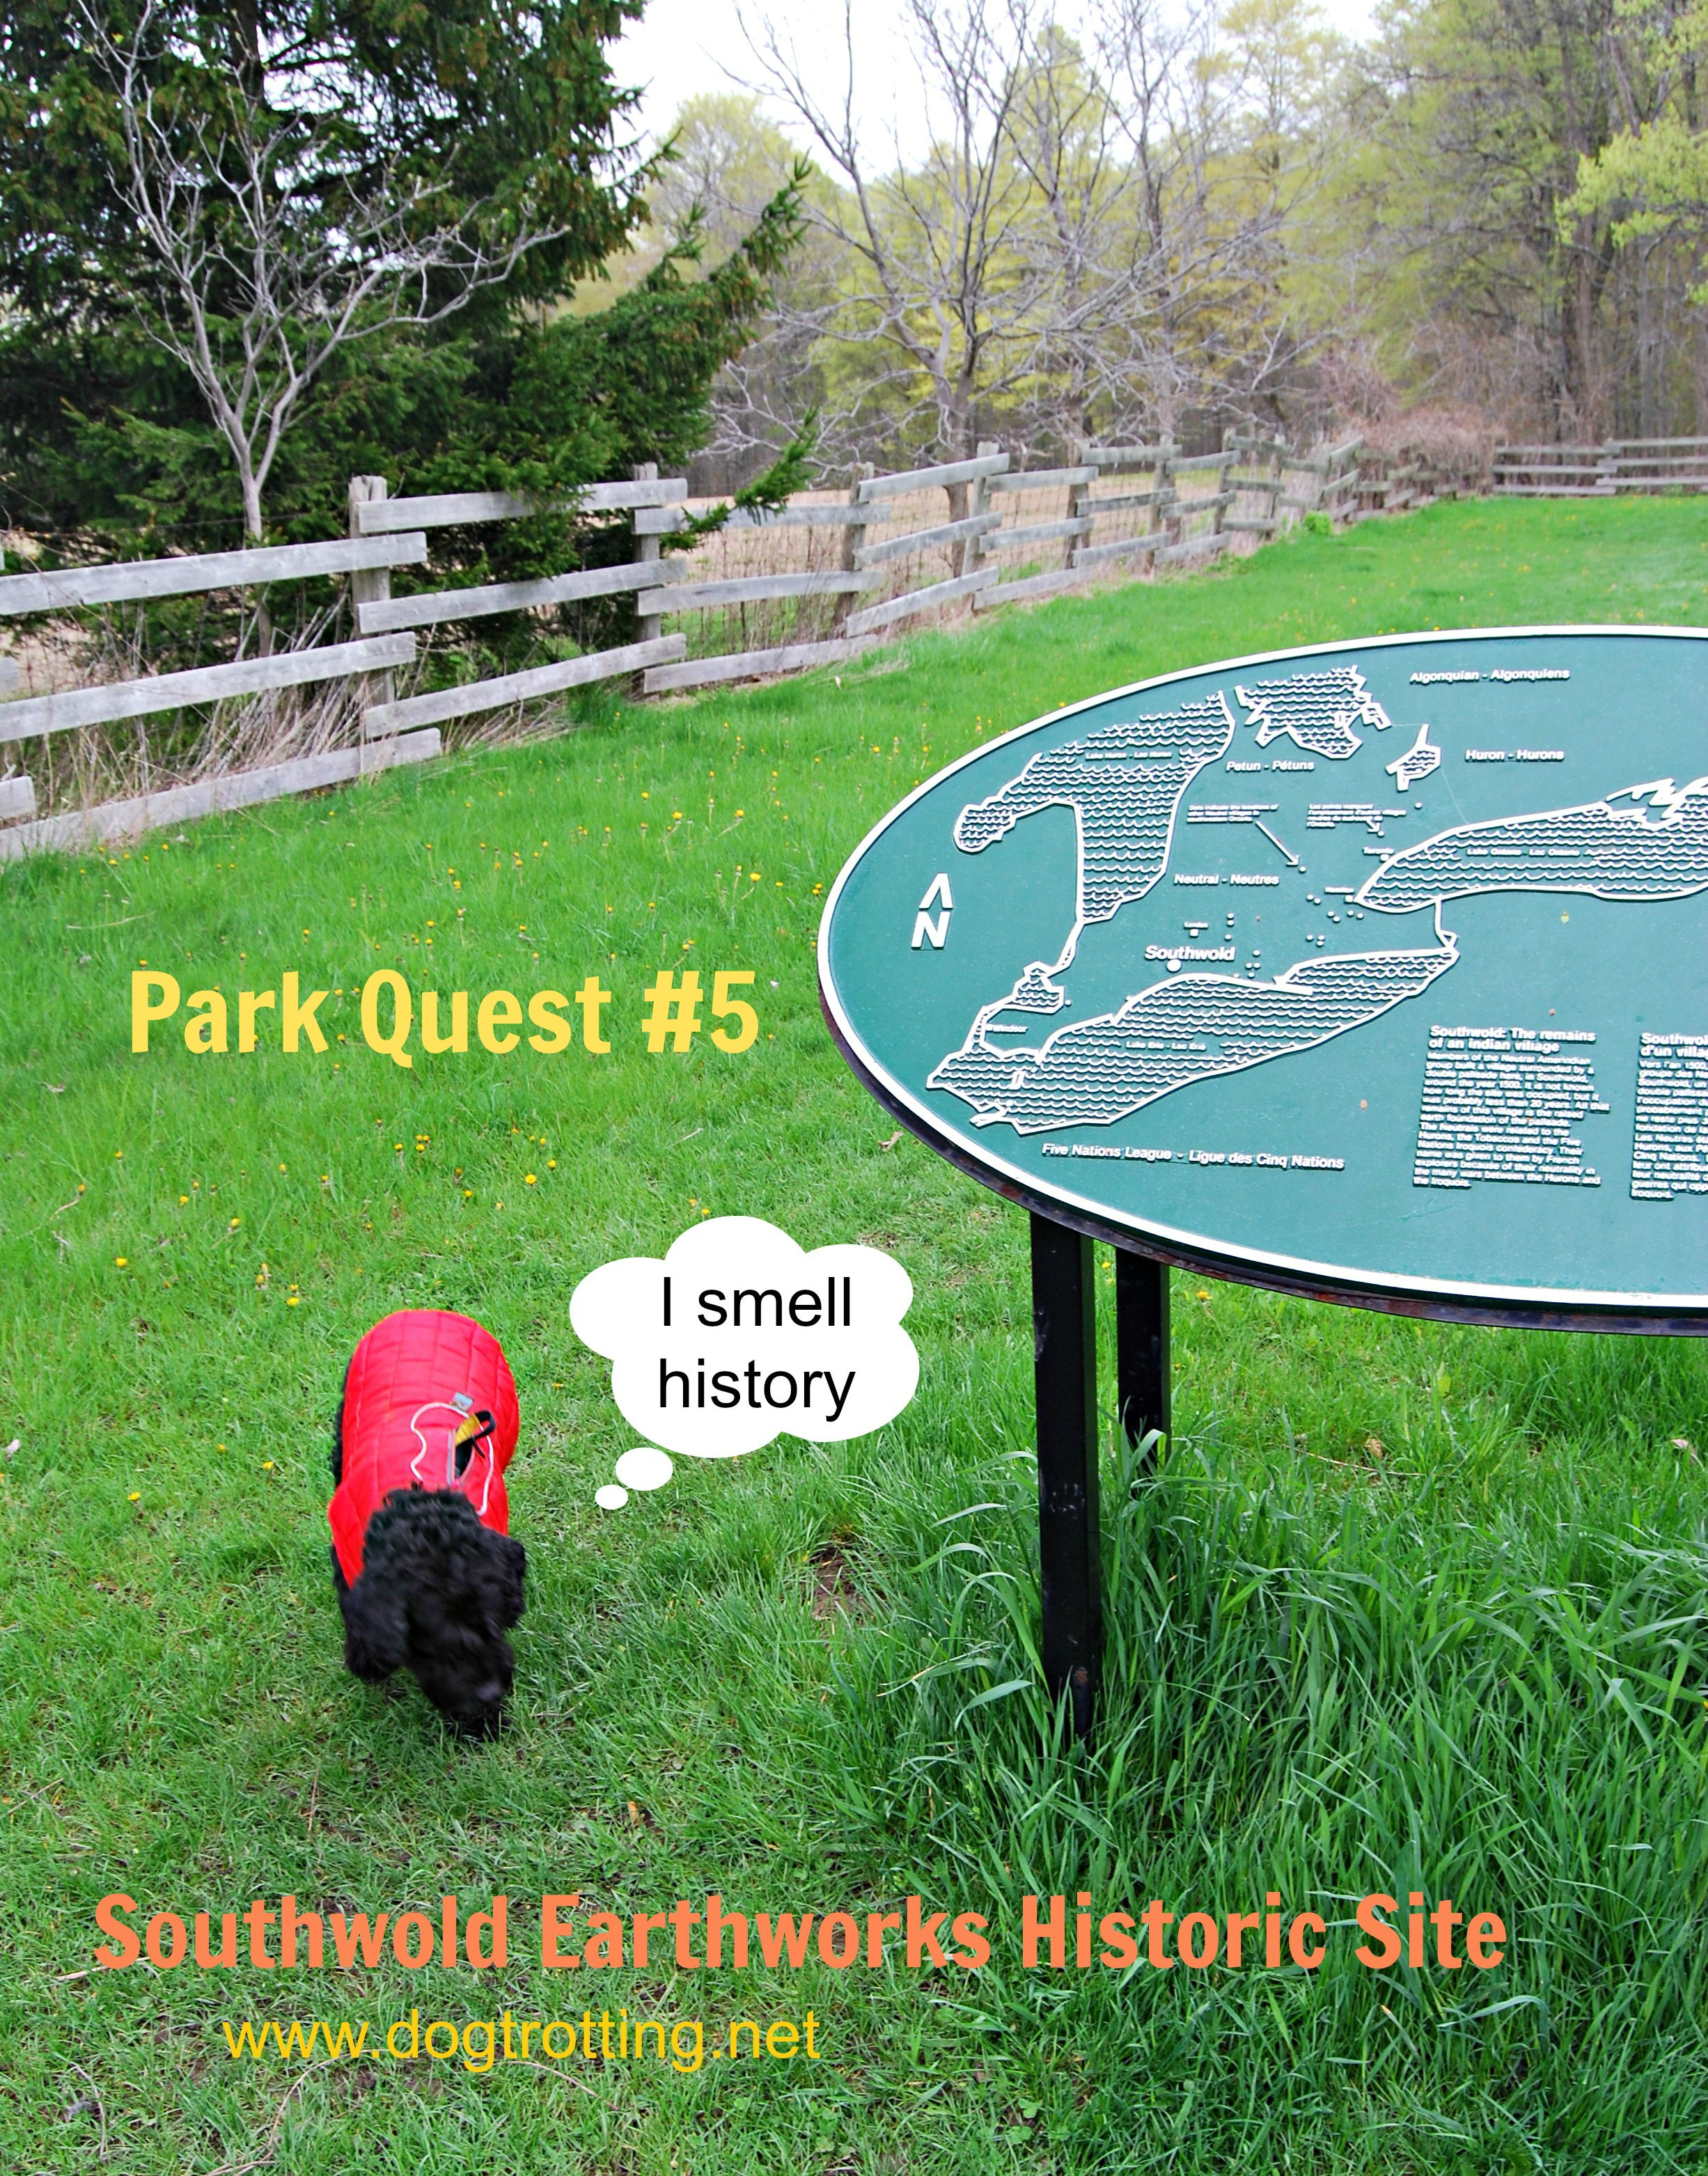 Park Quest #5: Southwold Earthworks Historic Site (and dog run?)